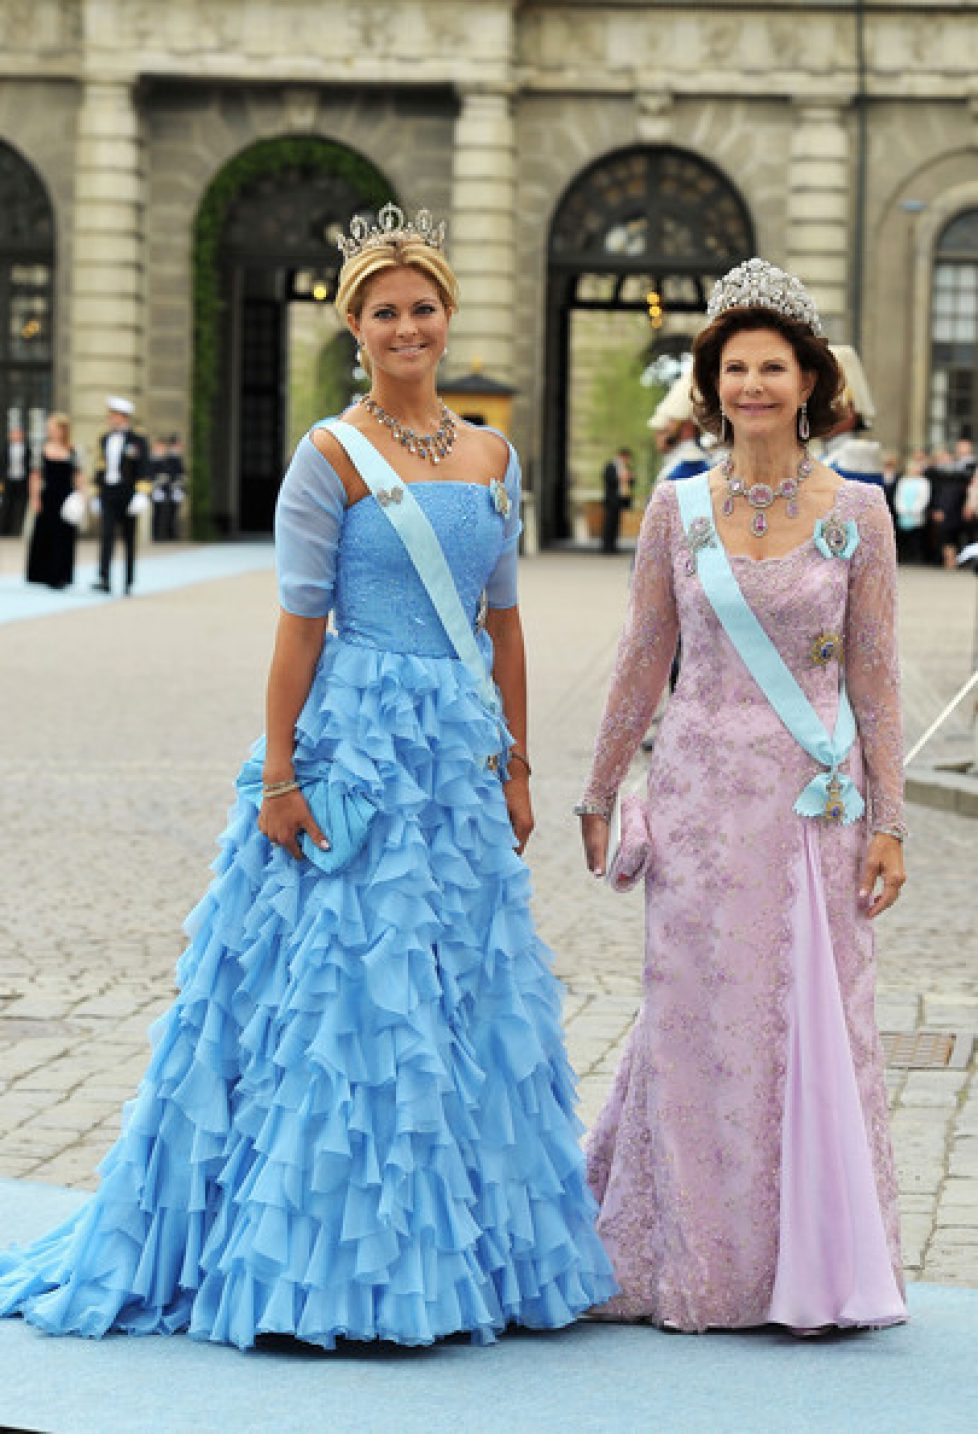 Princess+Madeleine+Queen+Silvia+Wedding+Swedish+DJ2E6_MPqXMl